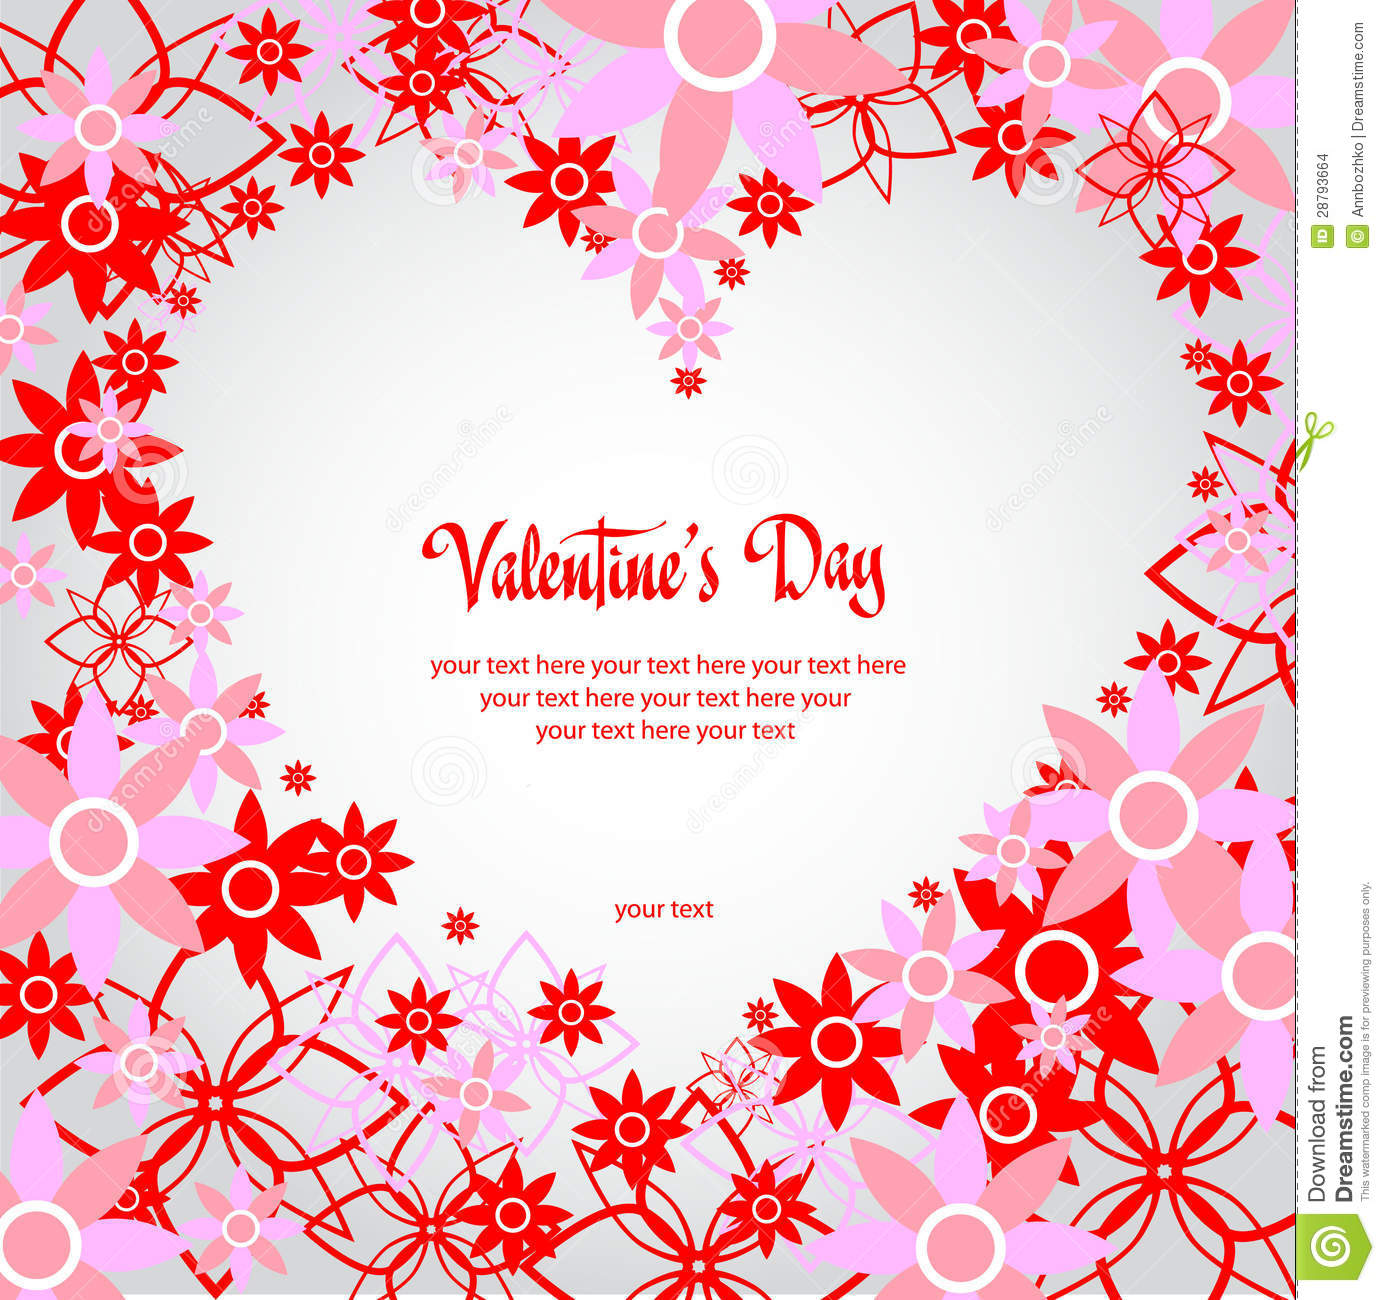 happy valentines day and weeding cards - Happy Valentines Cards